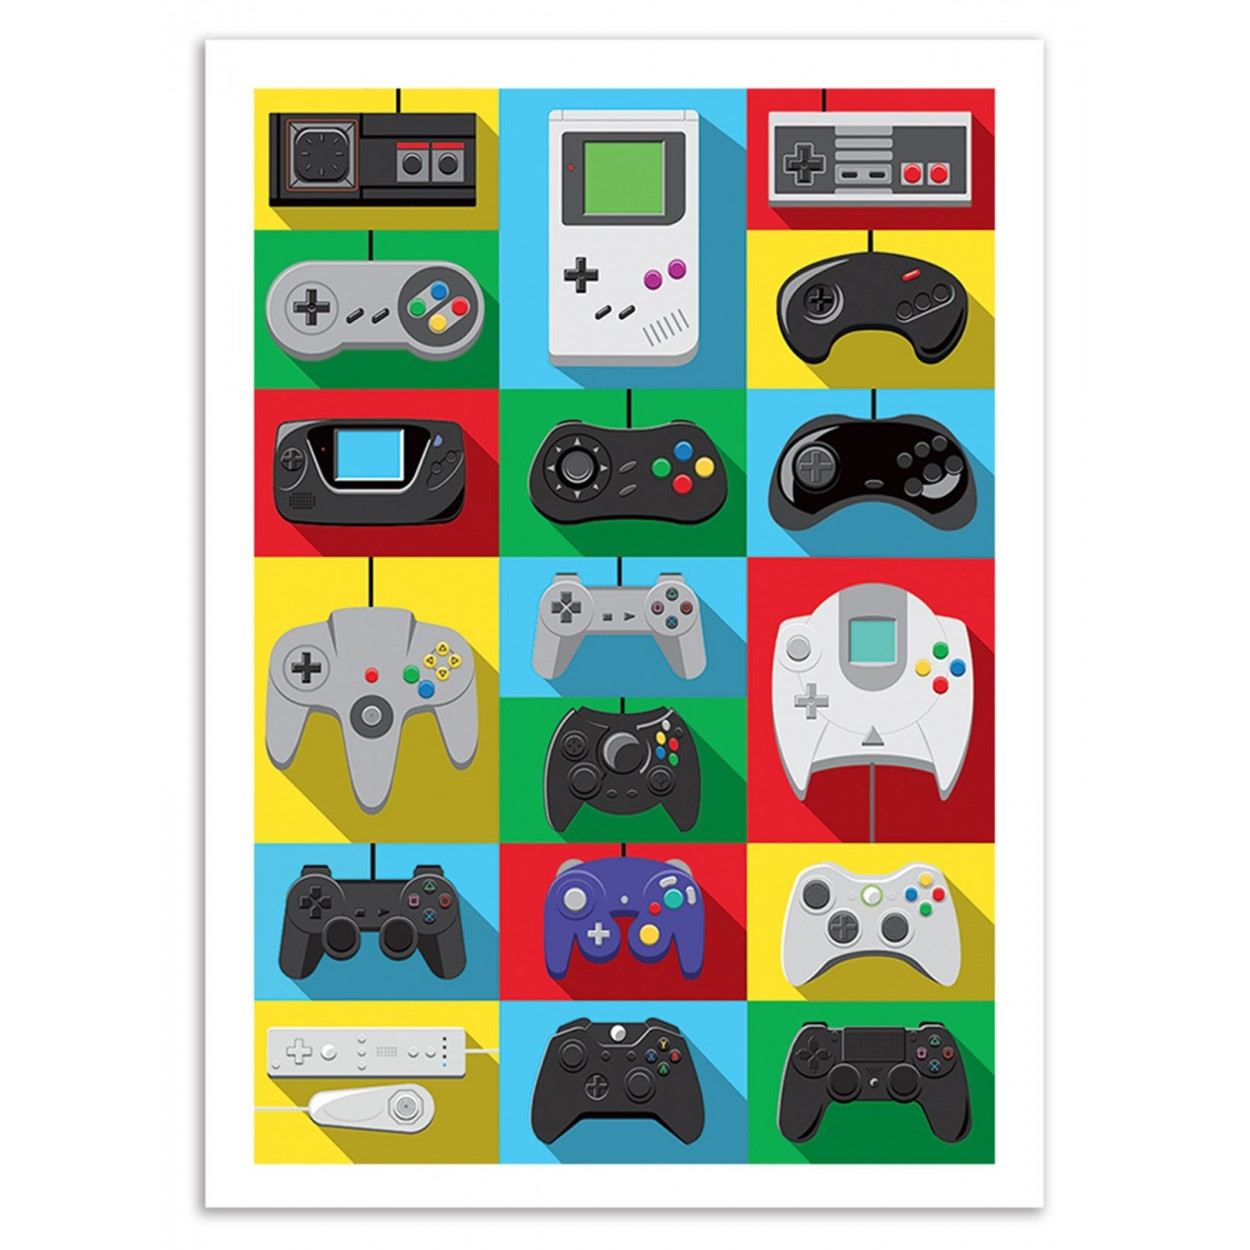 art prints illustrations design of controllers of video games. Black Bedroom Furniture Sets. Home Design Ideas